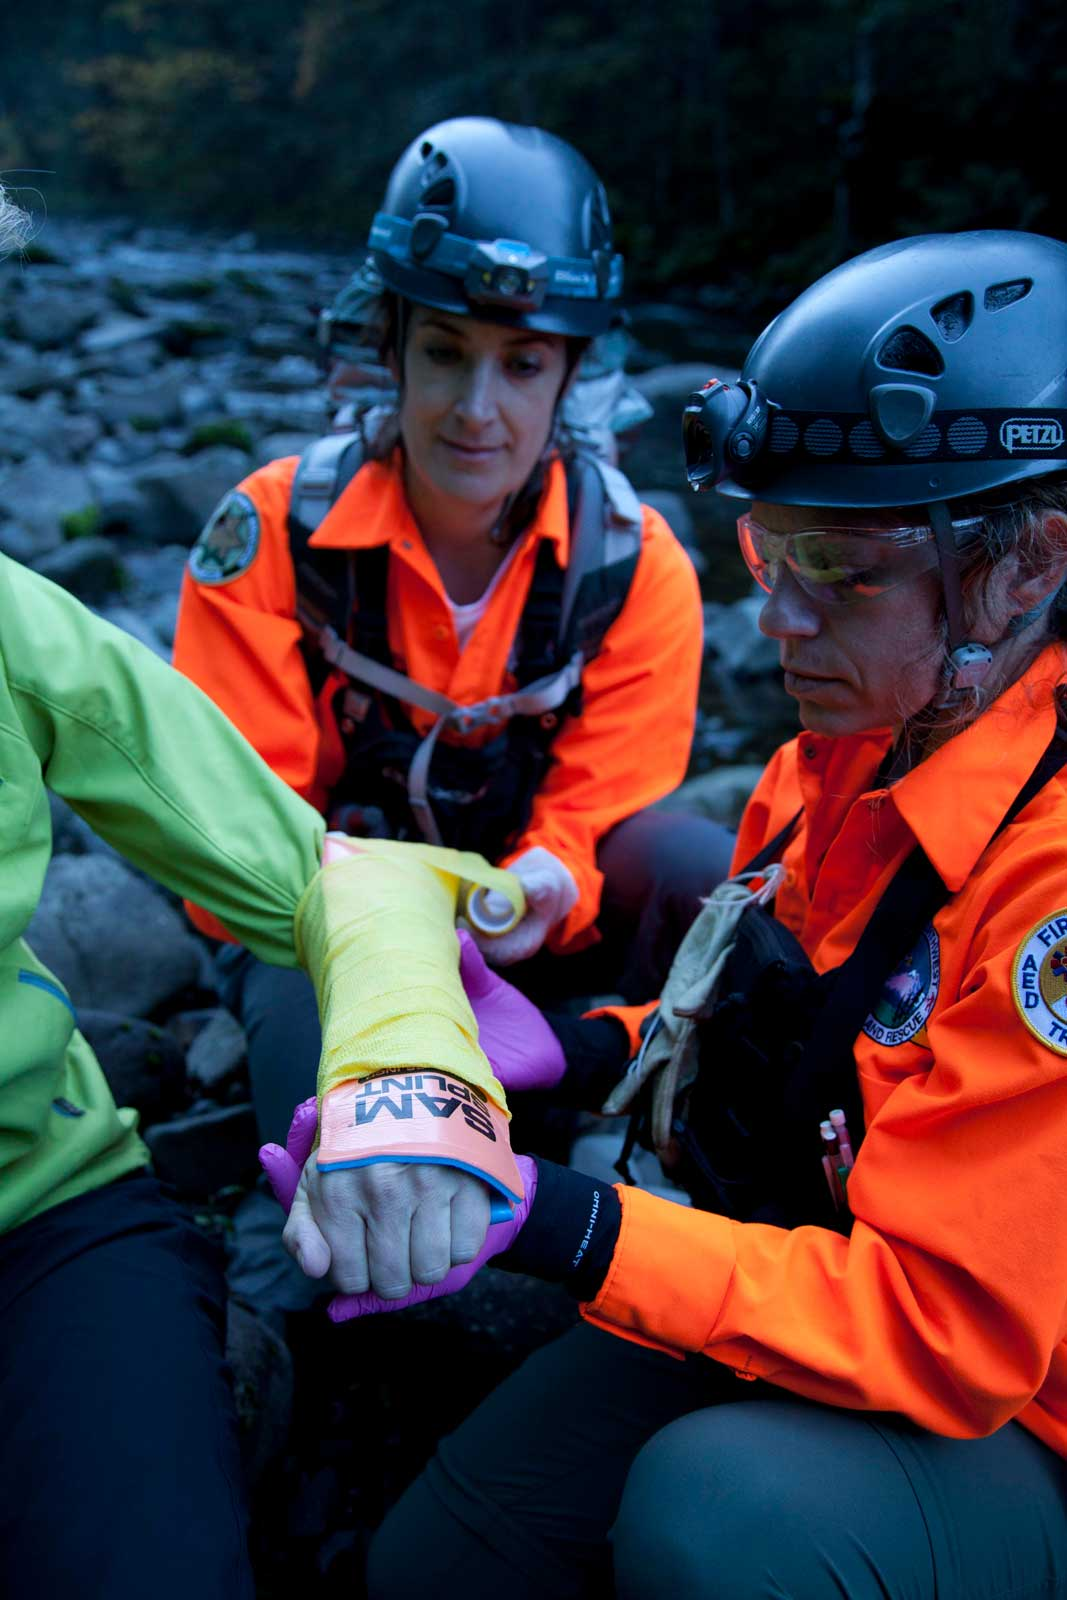 Two Search and Rescue Agents Use a Sam Splint on an Injured Person's arm